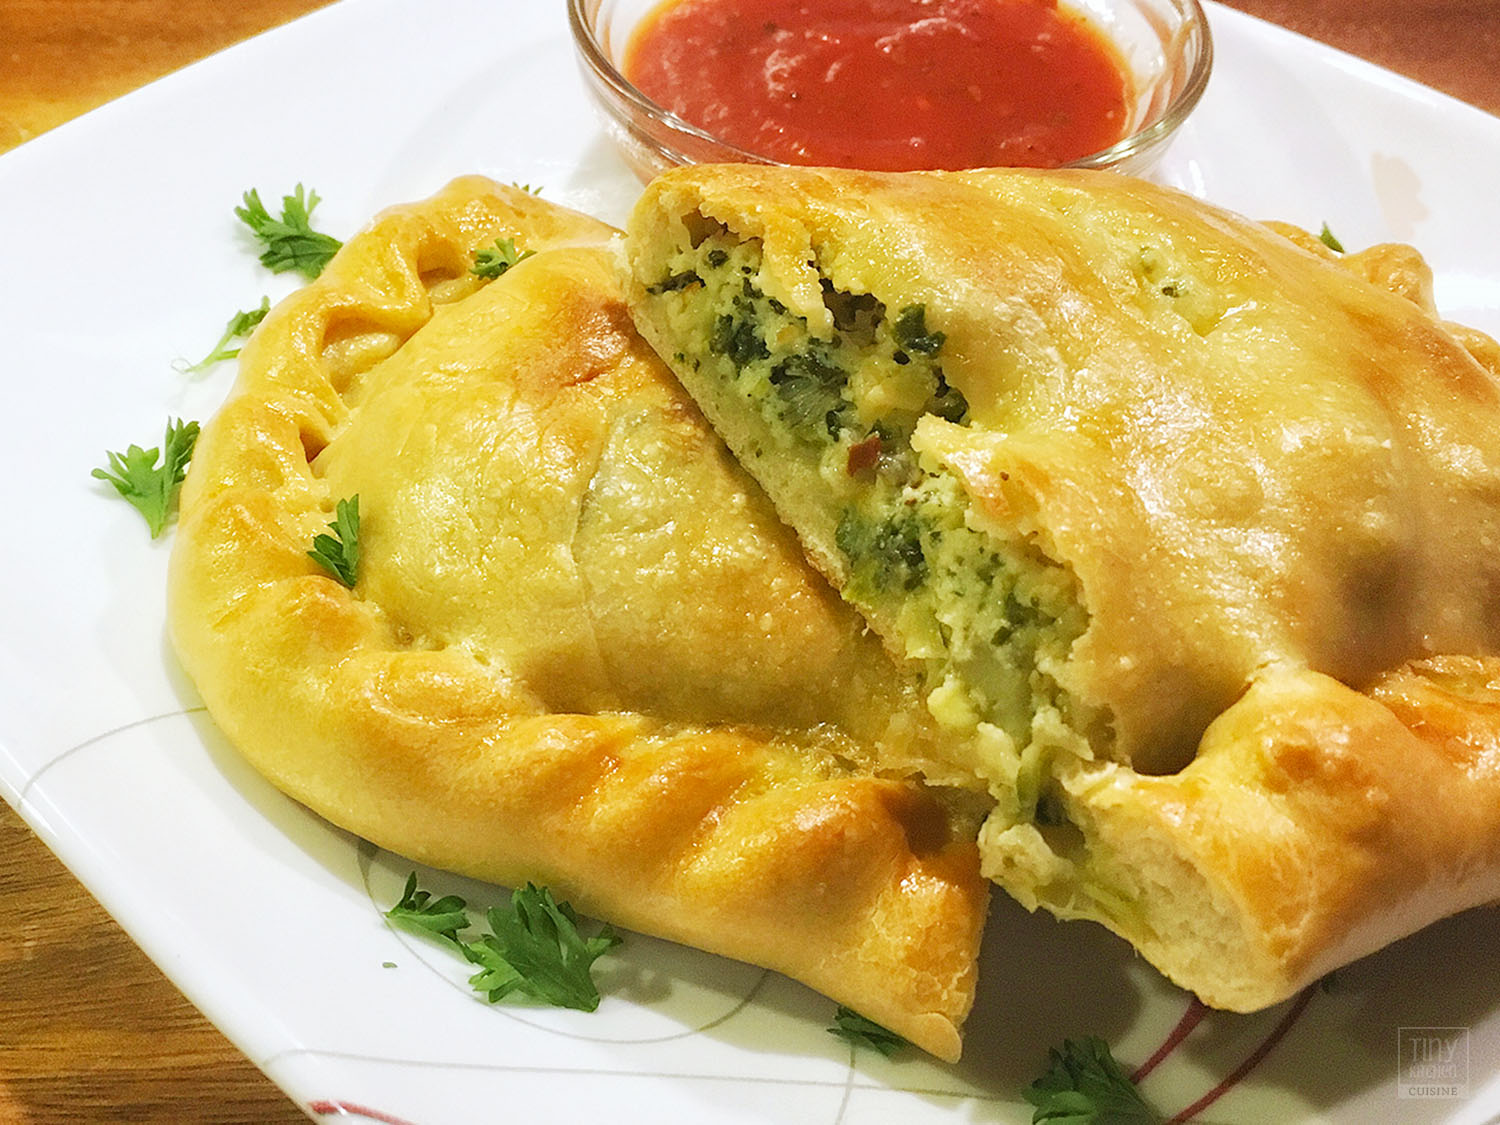 Cooking this Spinach Artichoke Calzone recipe from scratch in a tiny kitchen can be a labor of love but knowing how to make calzones is definitely worth it! | Tiny Kitchen Cuisine | http://tiny.kitchen